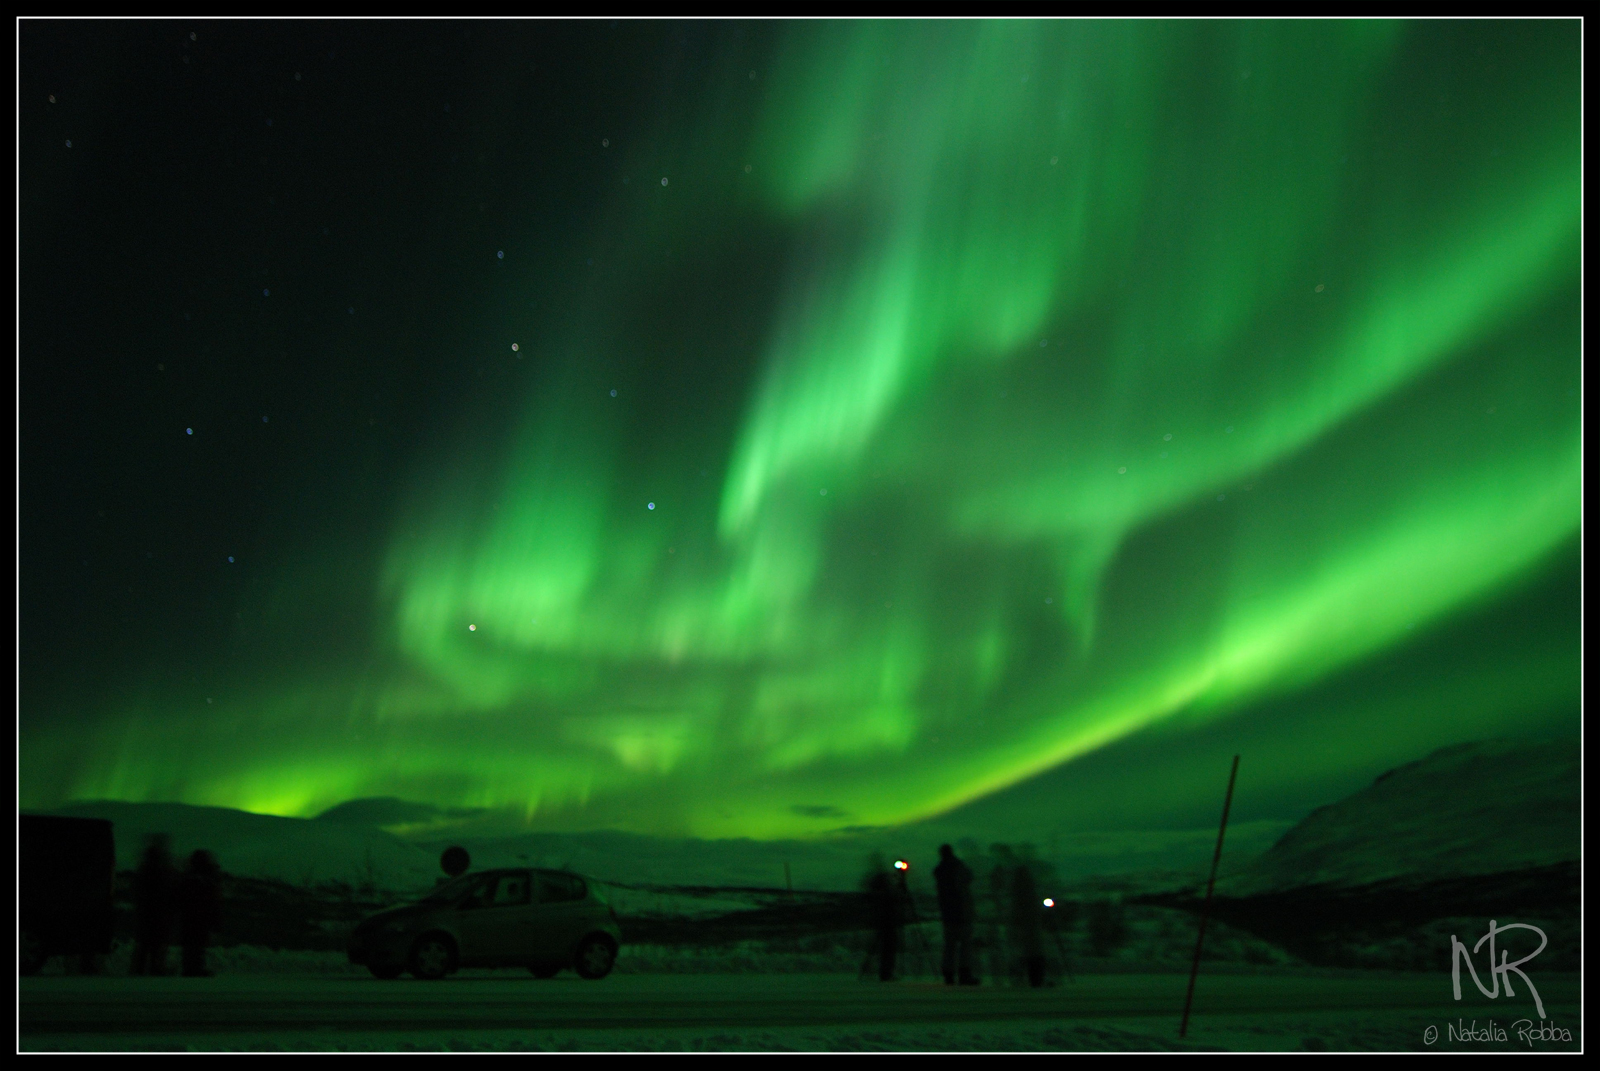 NASA Aurora Borealis (page 2) - Pics about space